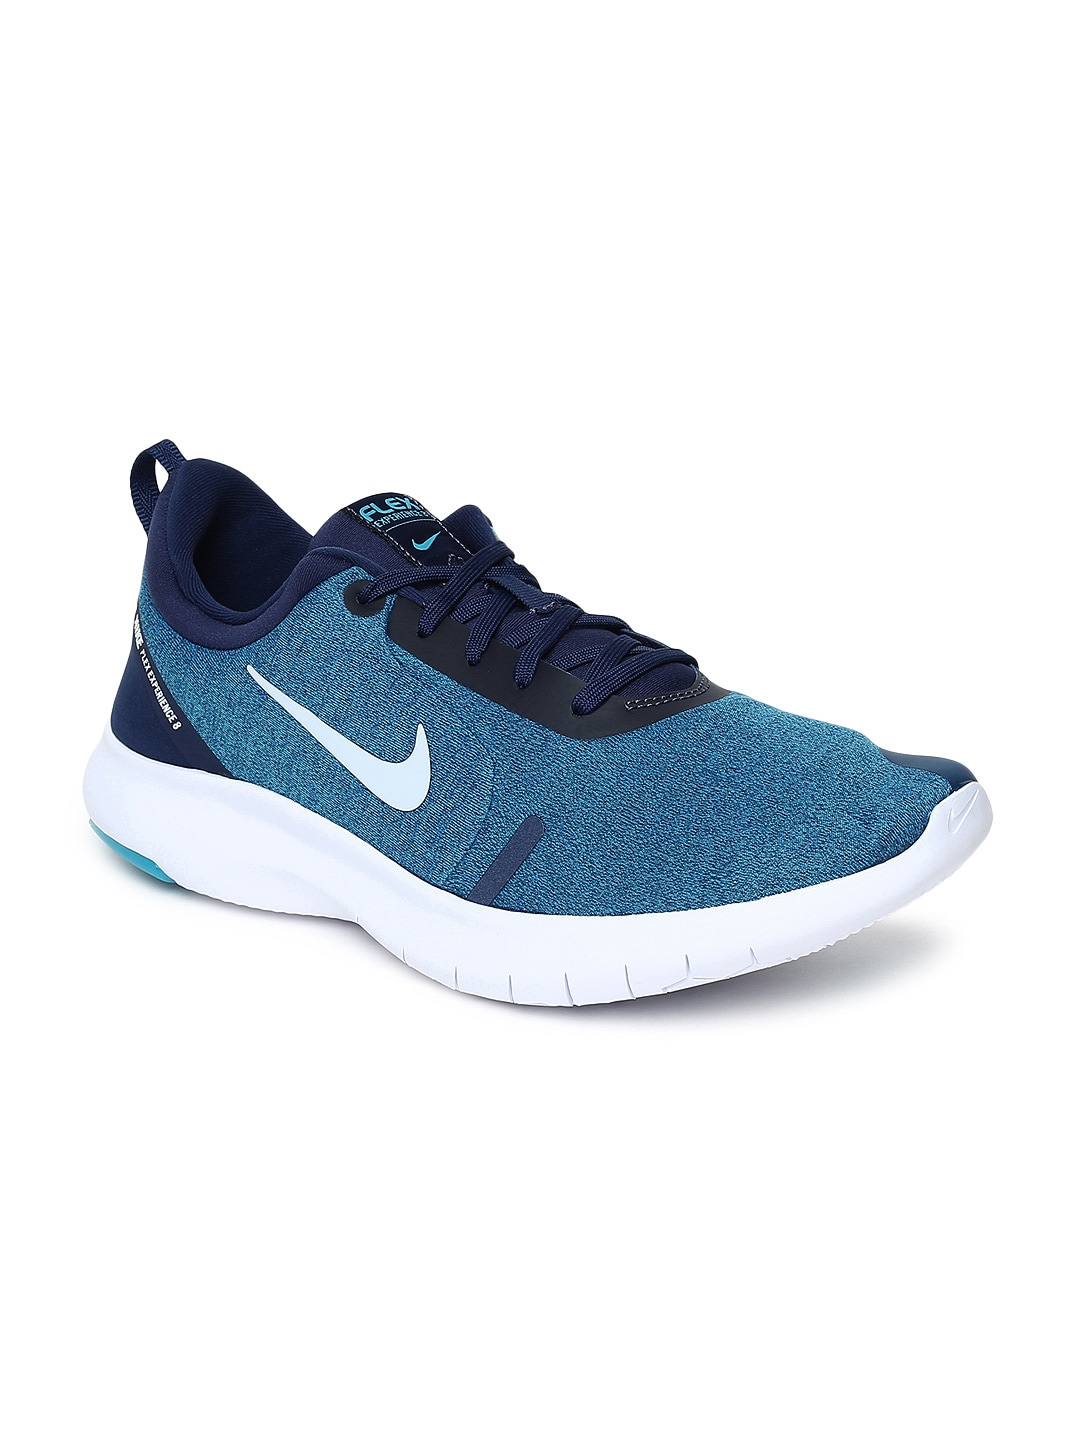 46659e53dfe Nike Sport Shoe - Buy Nike Sport Shoes At Best Price Online